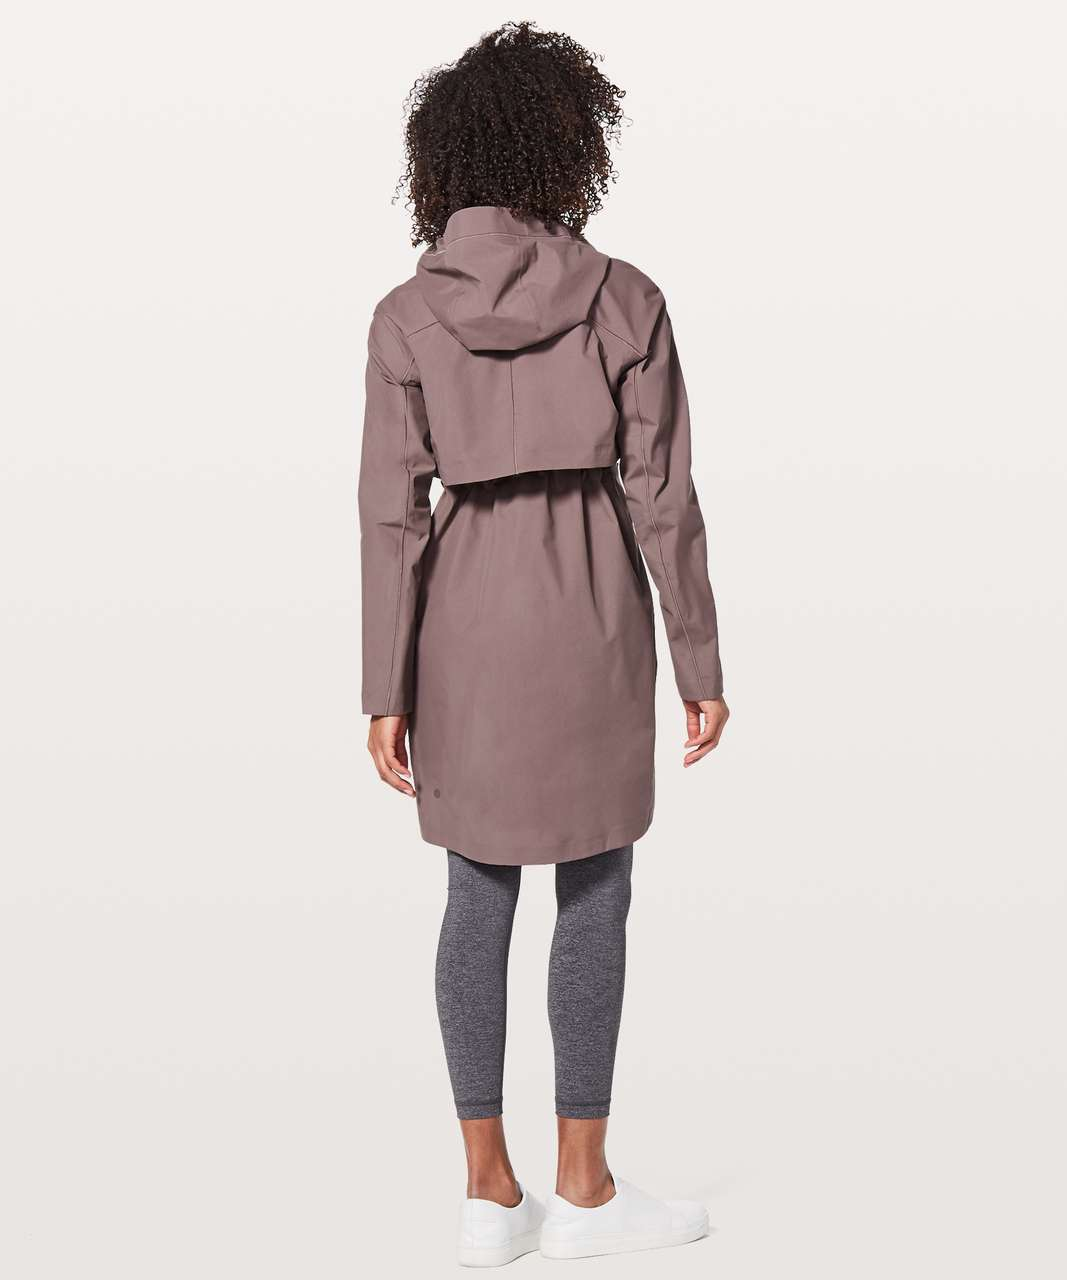 Lululemon Cloud Crush Jacket - Antique Bark